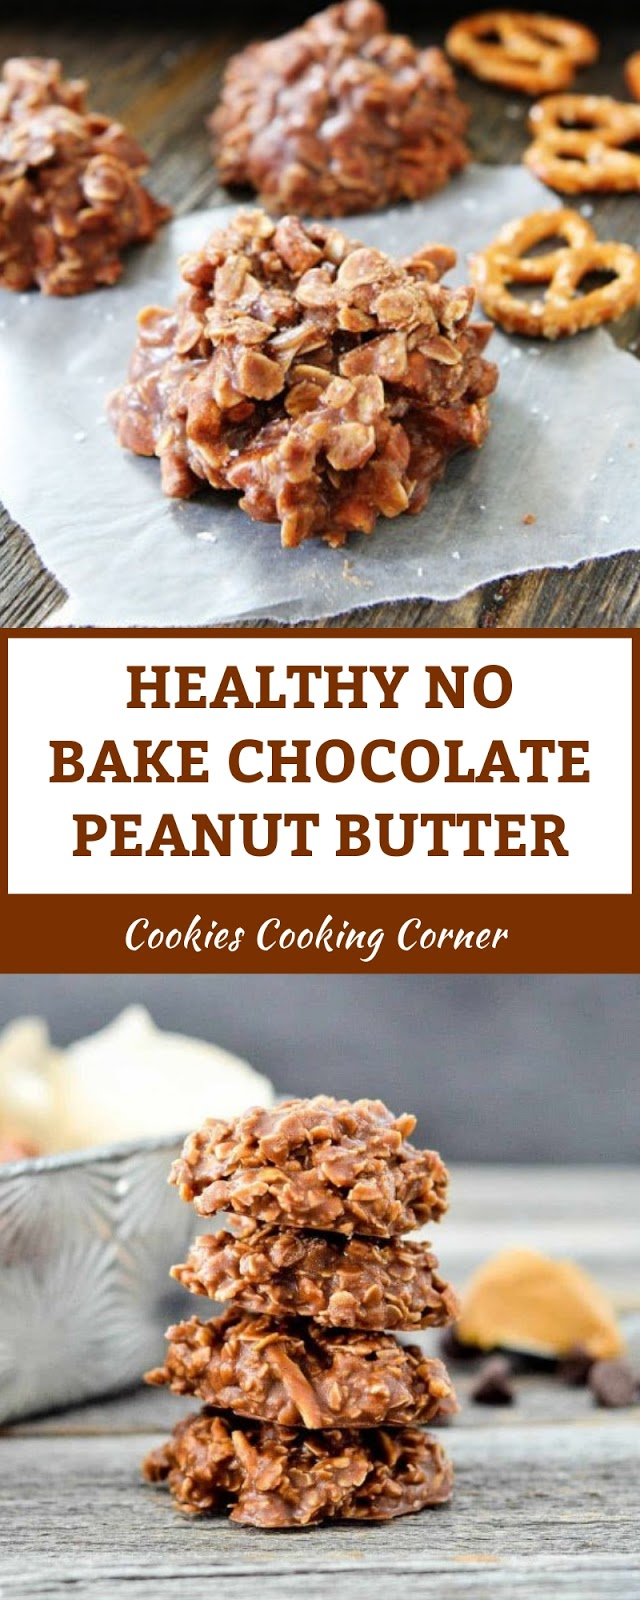 HEALTHY NO BAKE CHOCOLATE PEANUT BUTTER